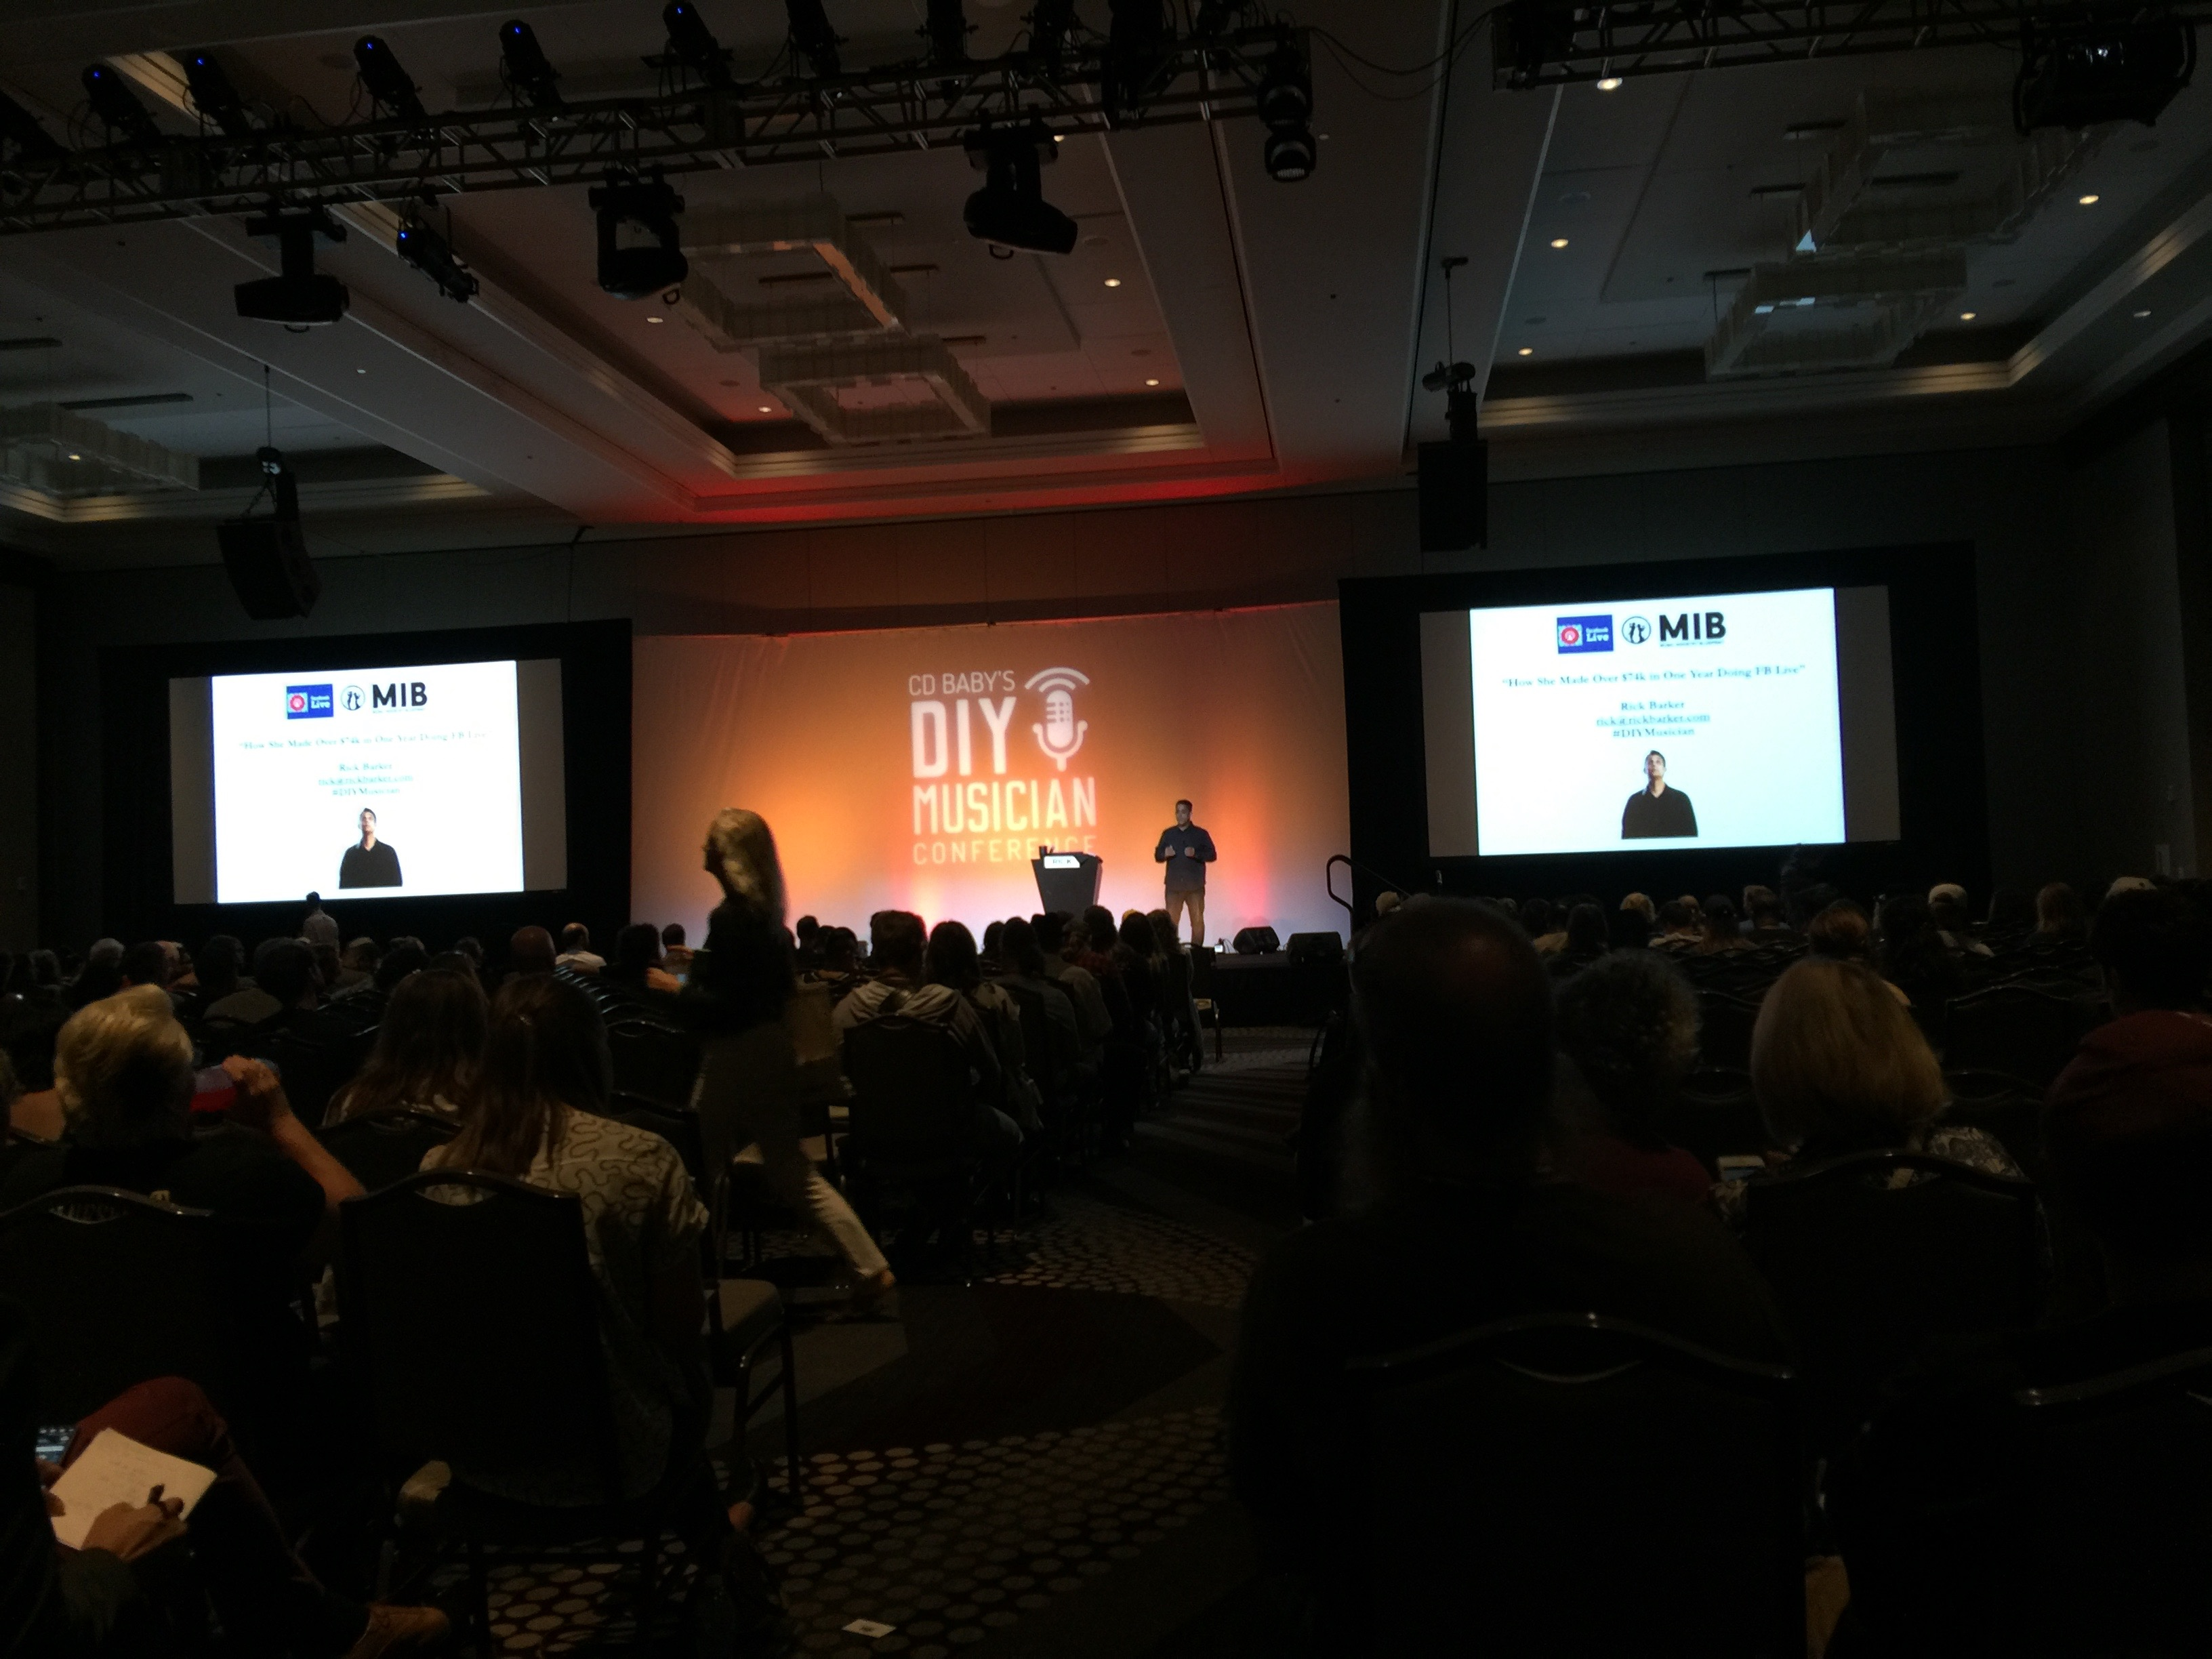 Photo of Rick Barker keynote on huge stage with la crowd of 1,000 to 1,500 people at CD Baby's DIY Musicians Conference 2017 in Nashville, Tennessee